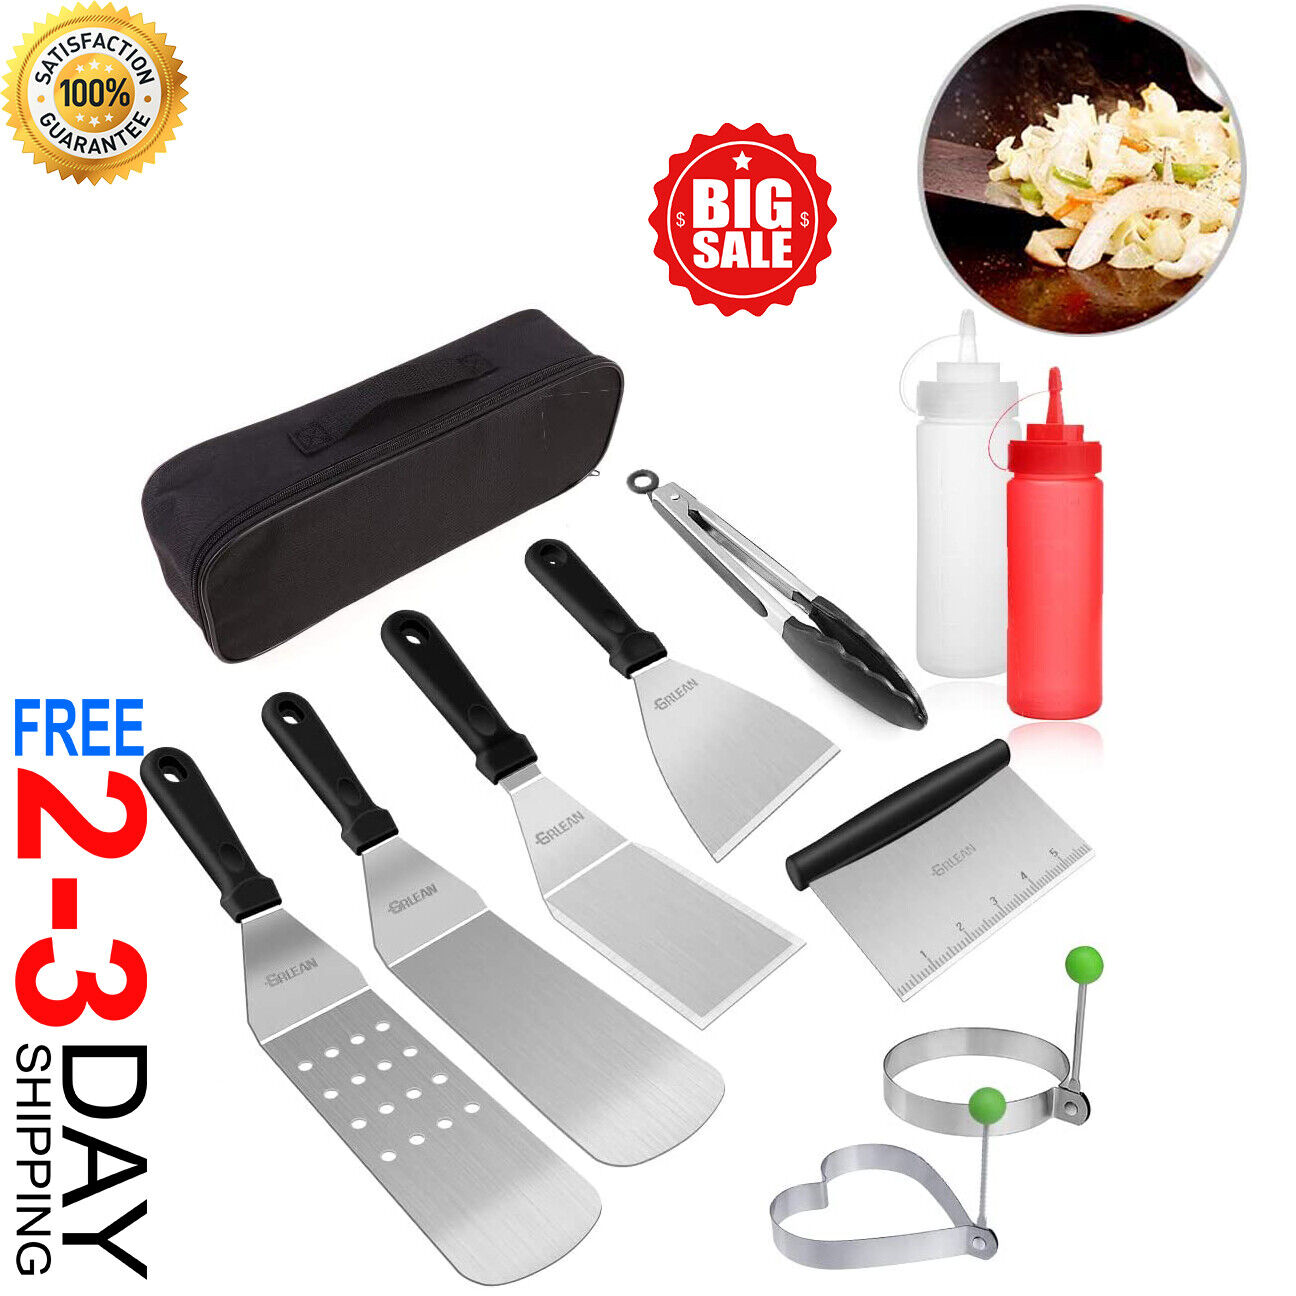 Blackstone Grill Accessories Kit, 10-PCS Griddle Barbecue To